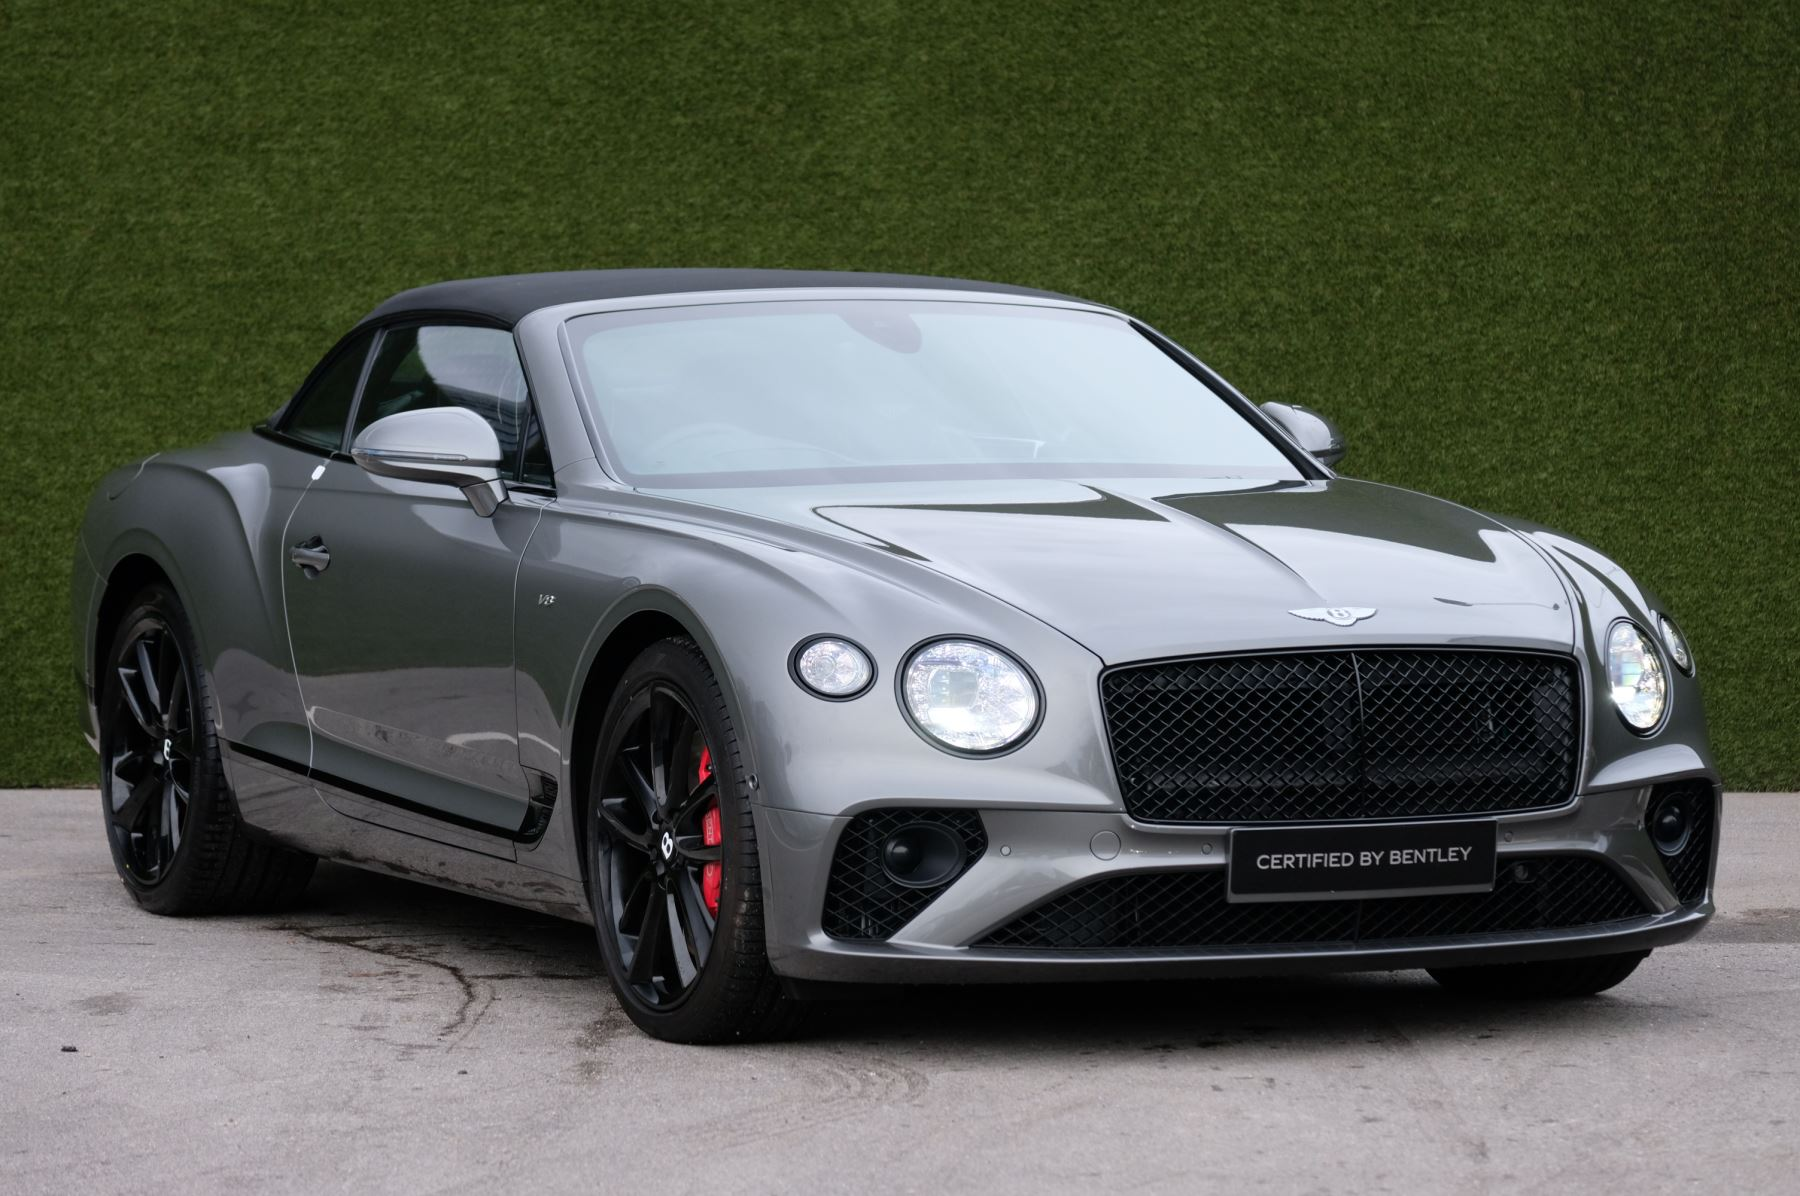 Bentley Continental GTC 0.0 4.0 V8 Mulliner Driving Spec Auto